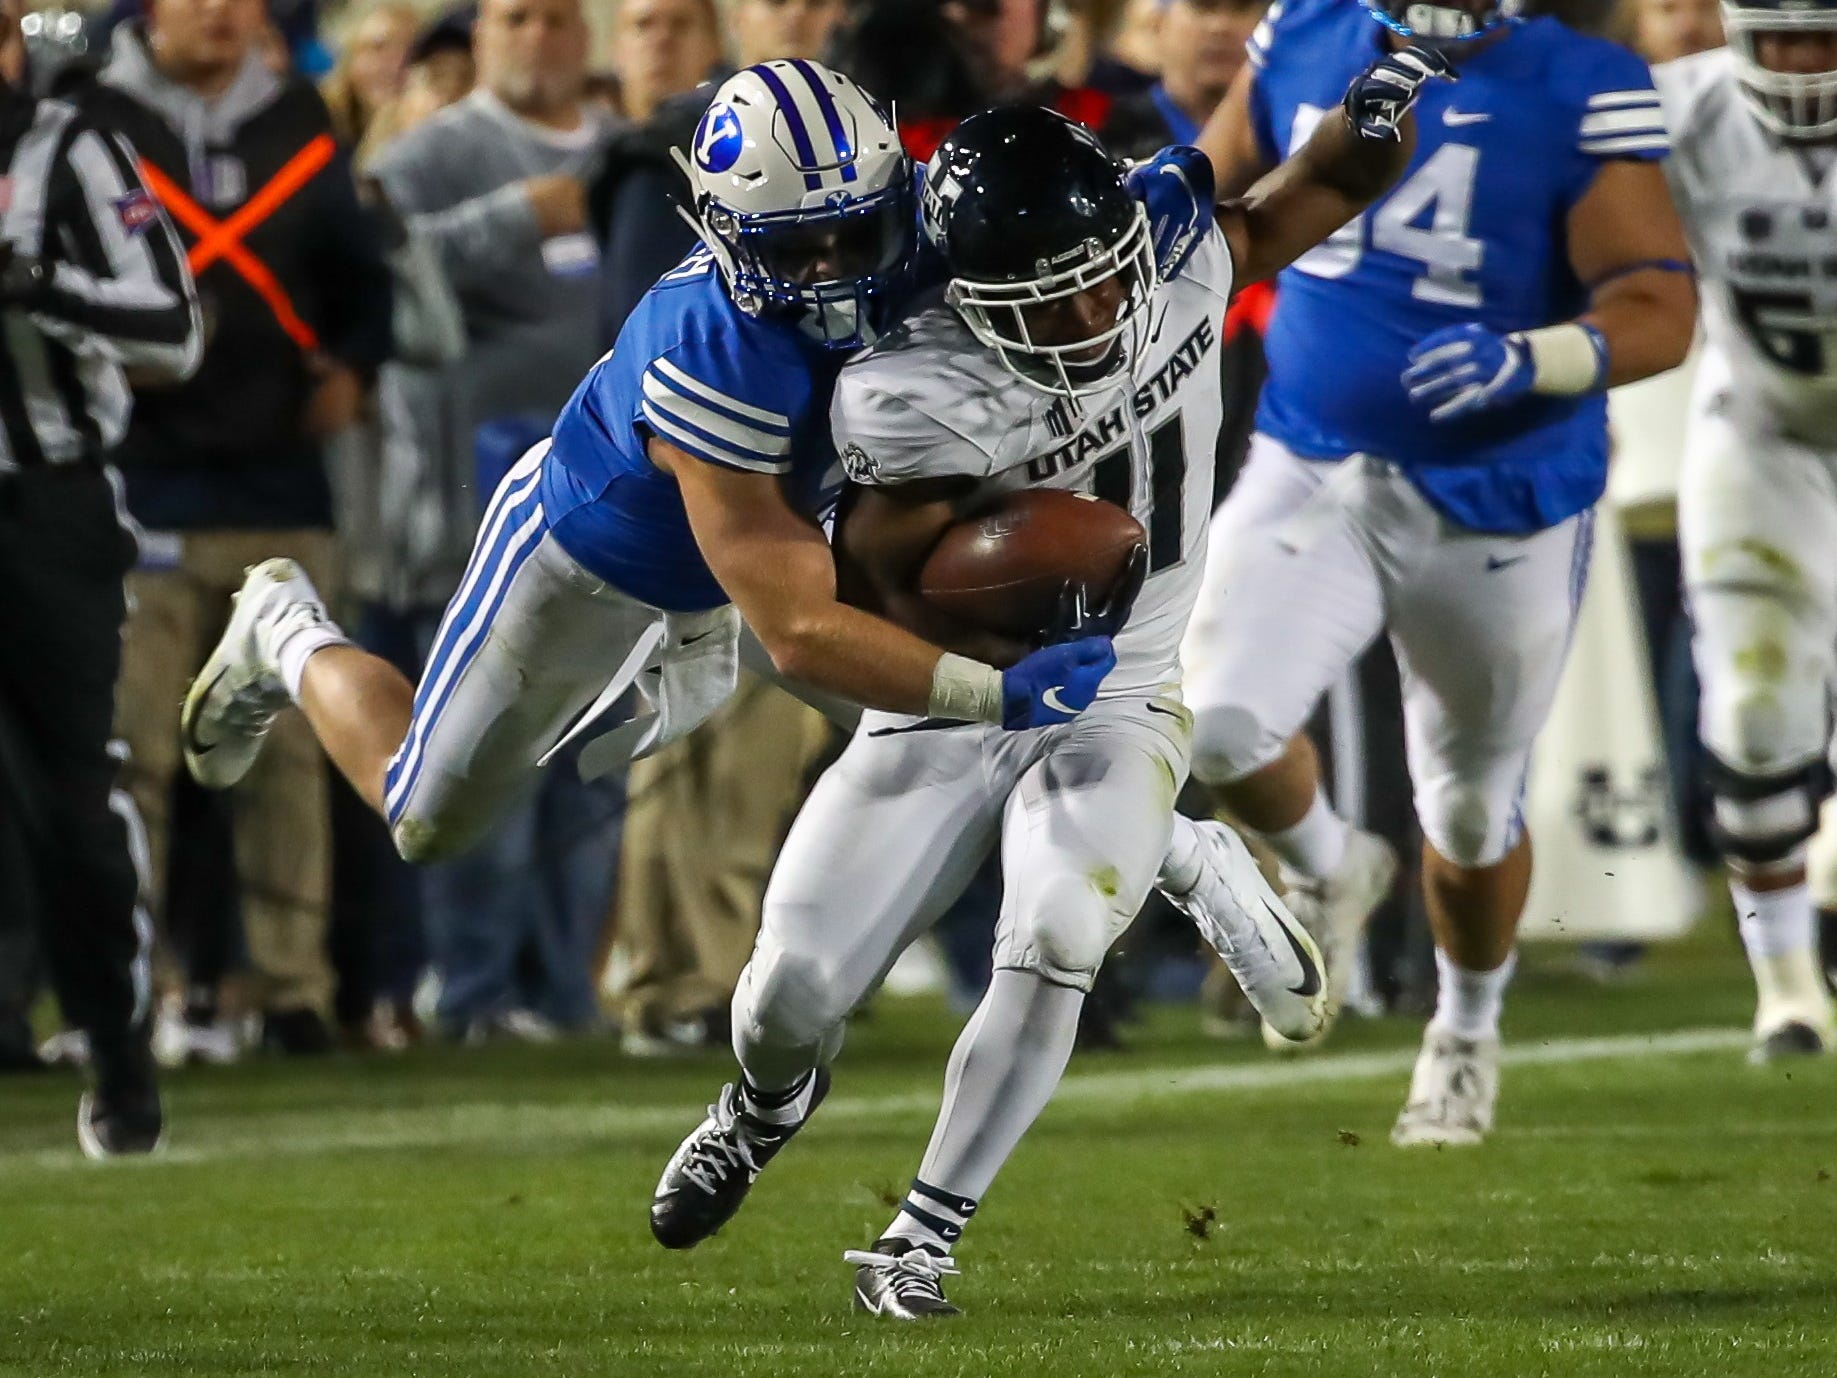 Utah State receiver Aaren Vaughns (11) tries to elude a BYU defender after a second-half catch.